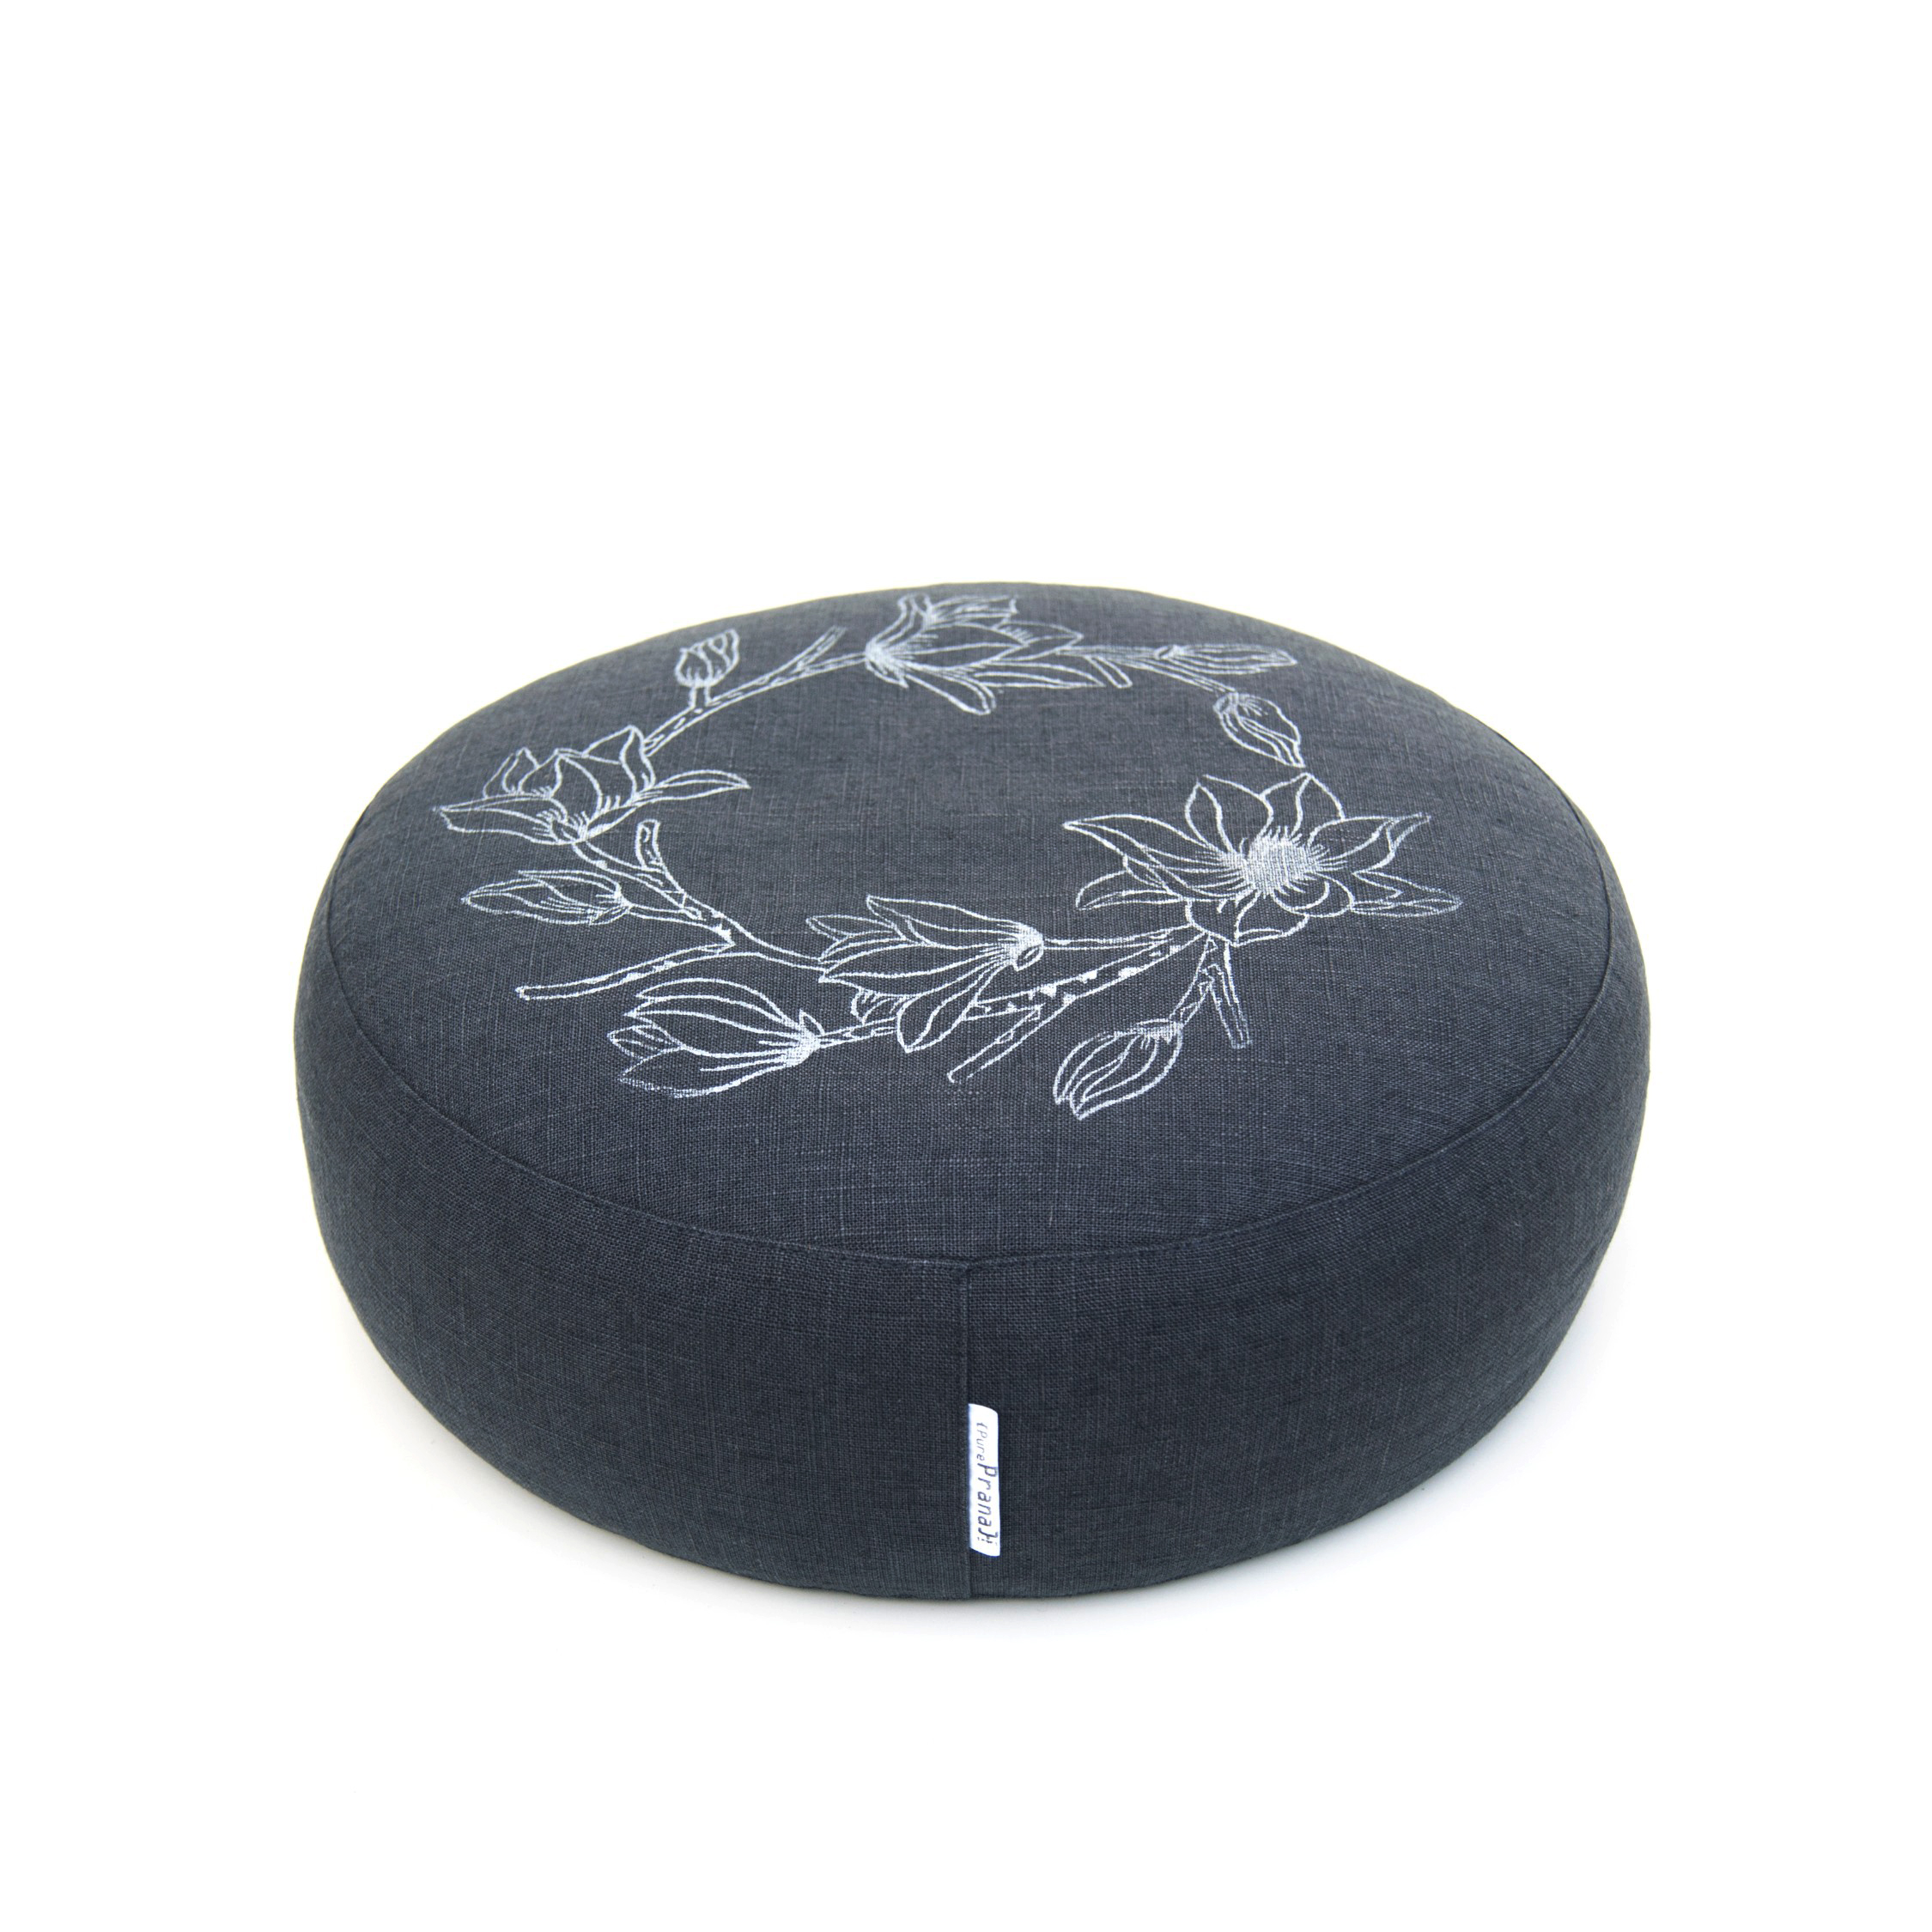 Meditation cushion Magnolia in dark gray